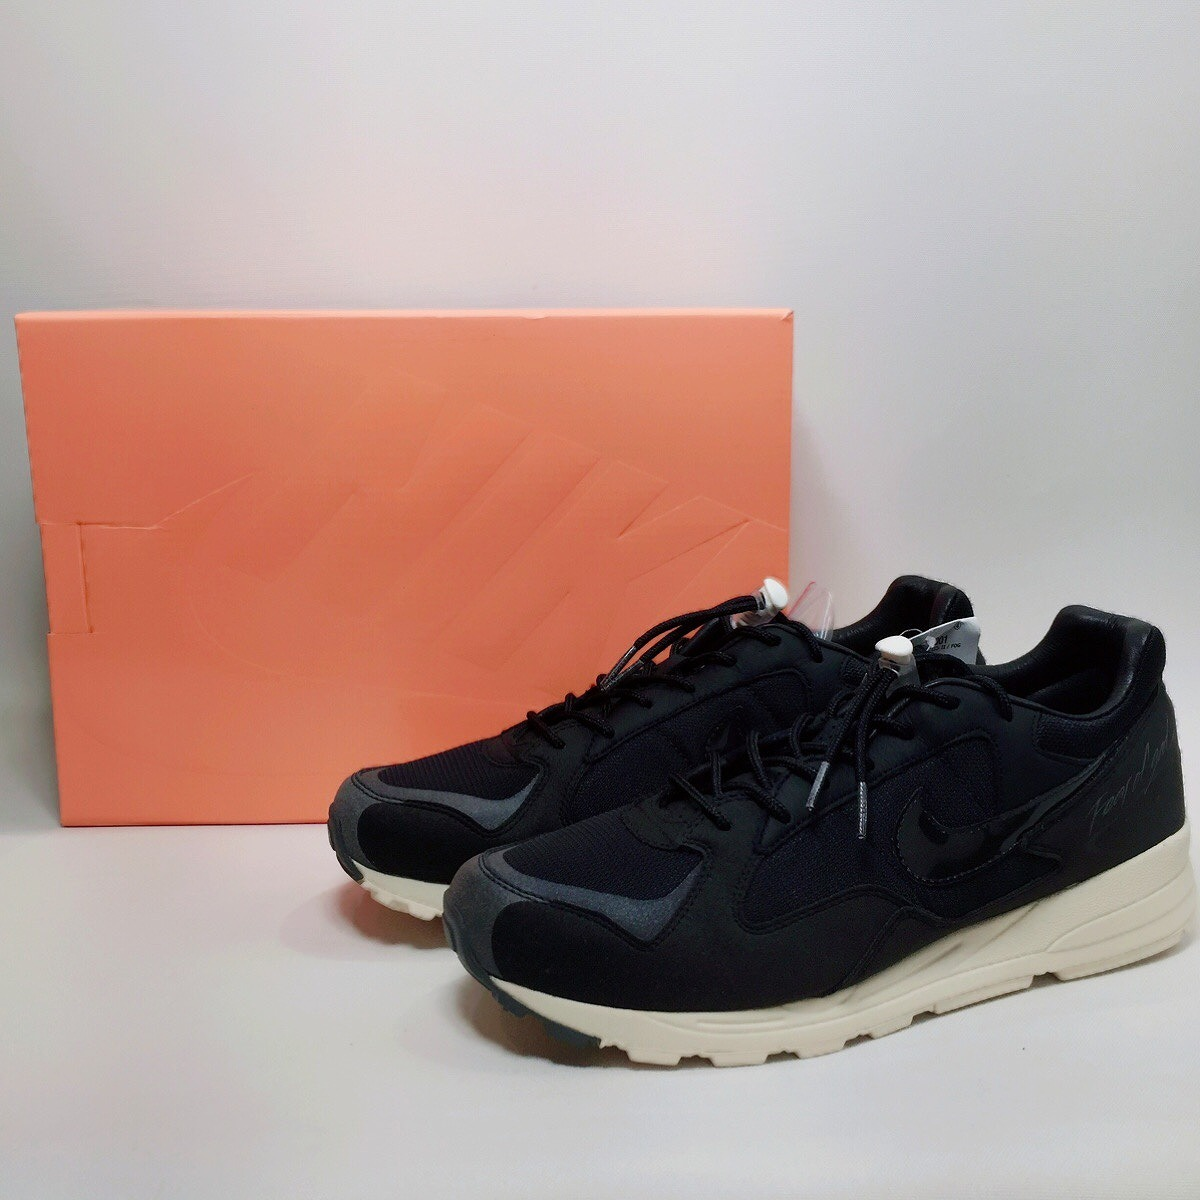 uk availability b9761 1244e product explanation is the arrival of NIKE AIR SKYLON 2  FOG from NIKE  X Fear Of God! The one you are looking for without passing over!